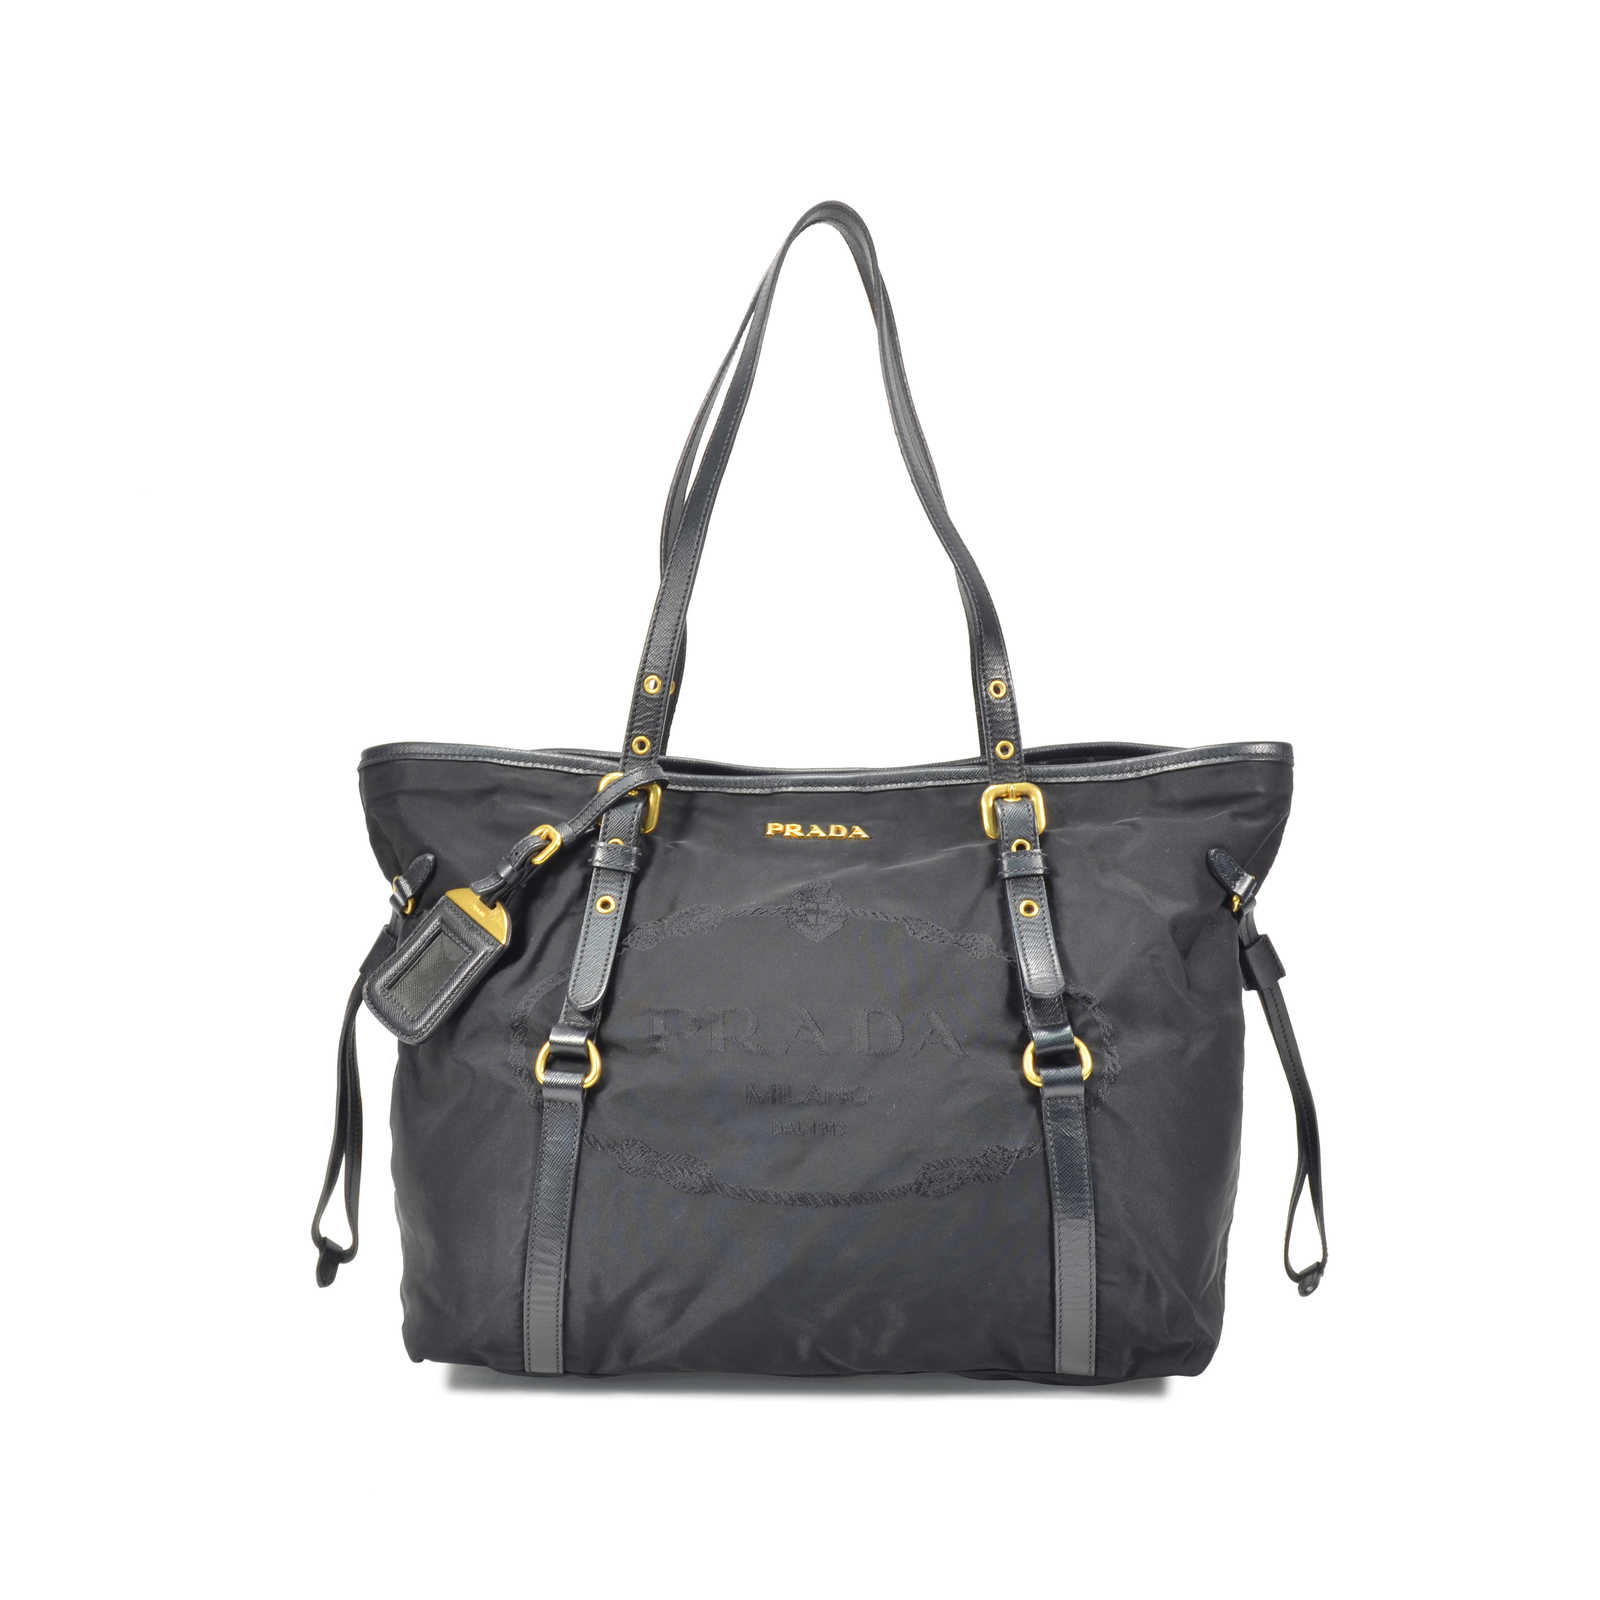 03354ade318d ... france authentic pre owned prada nylon tote bag pss 320 00006 thumbnail  ea08d d5a53